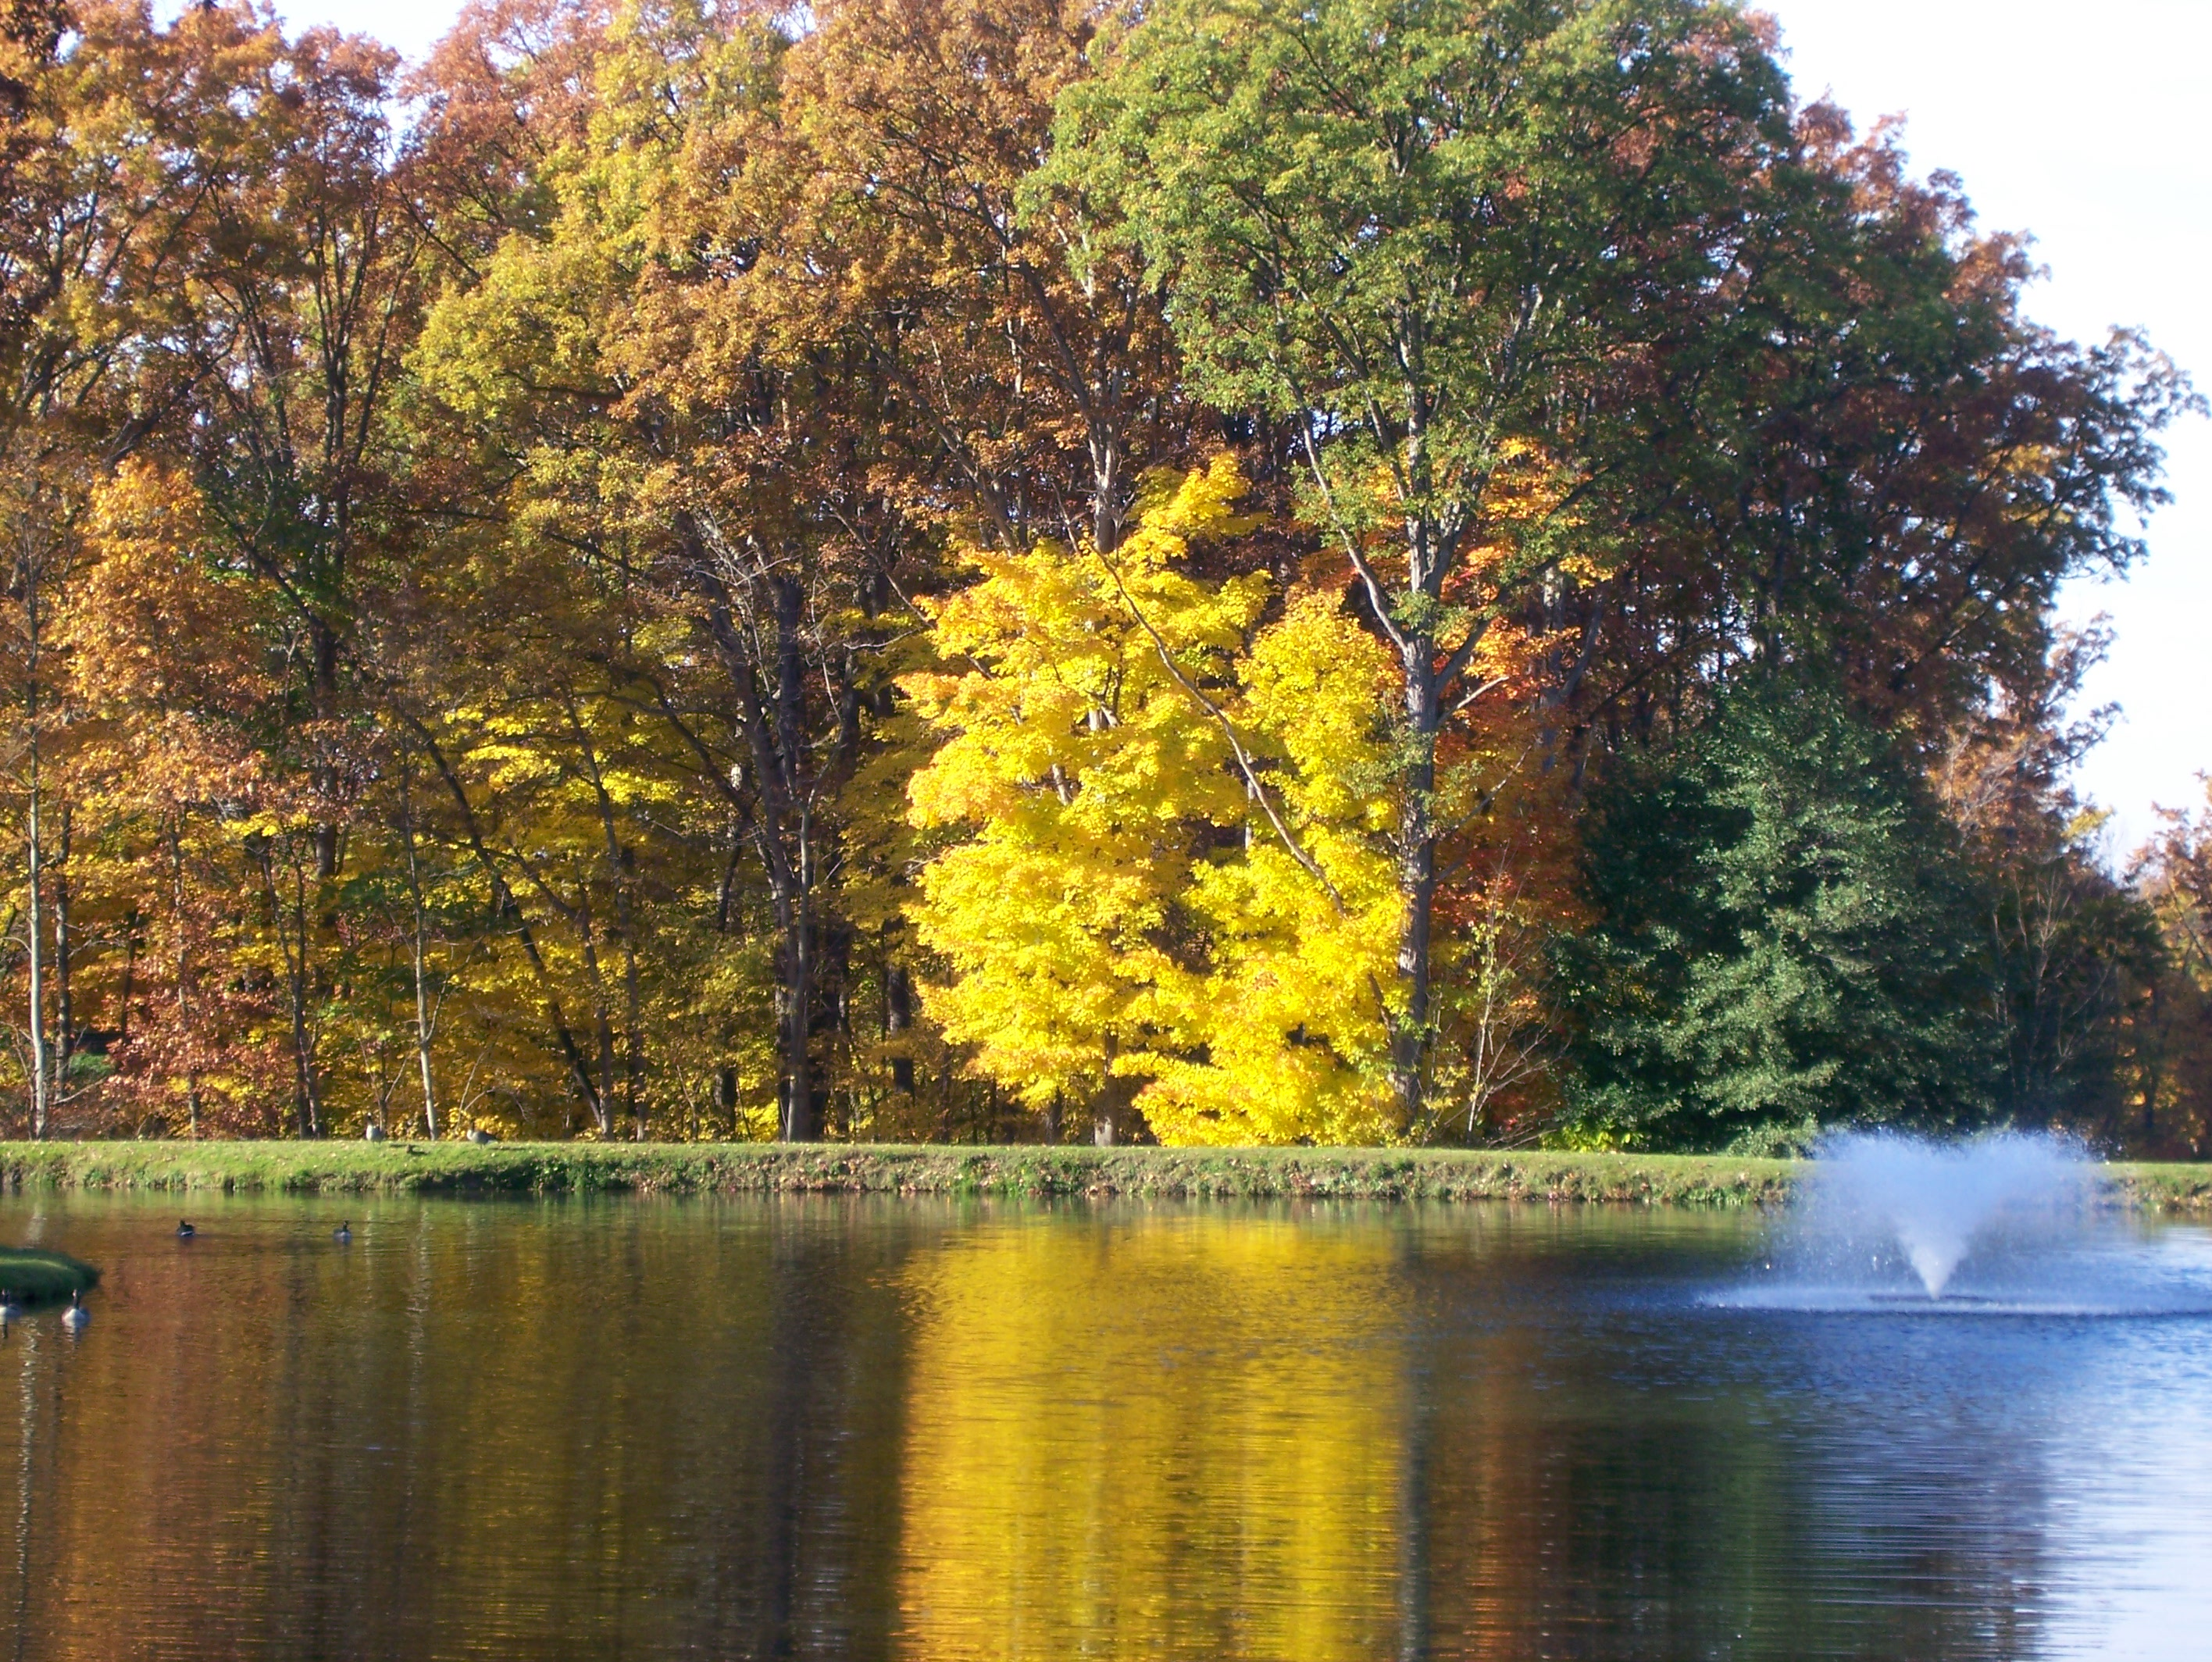 Lake-fall-yellow-tree